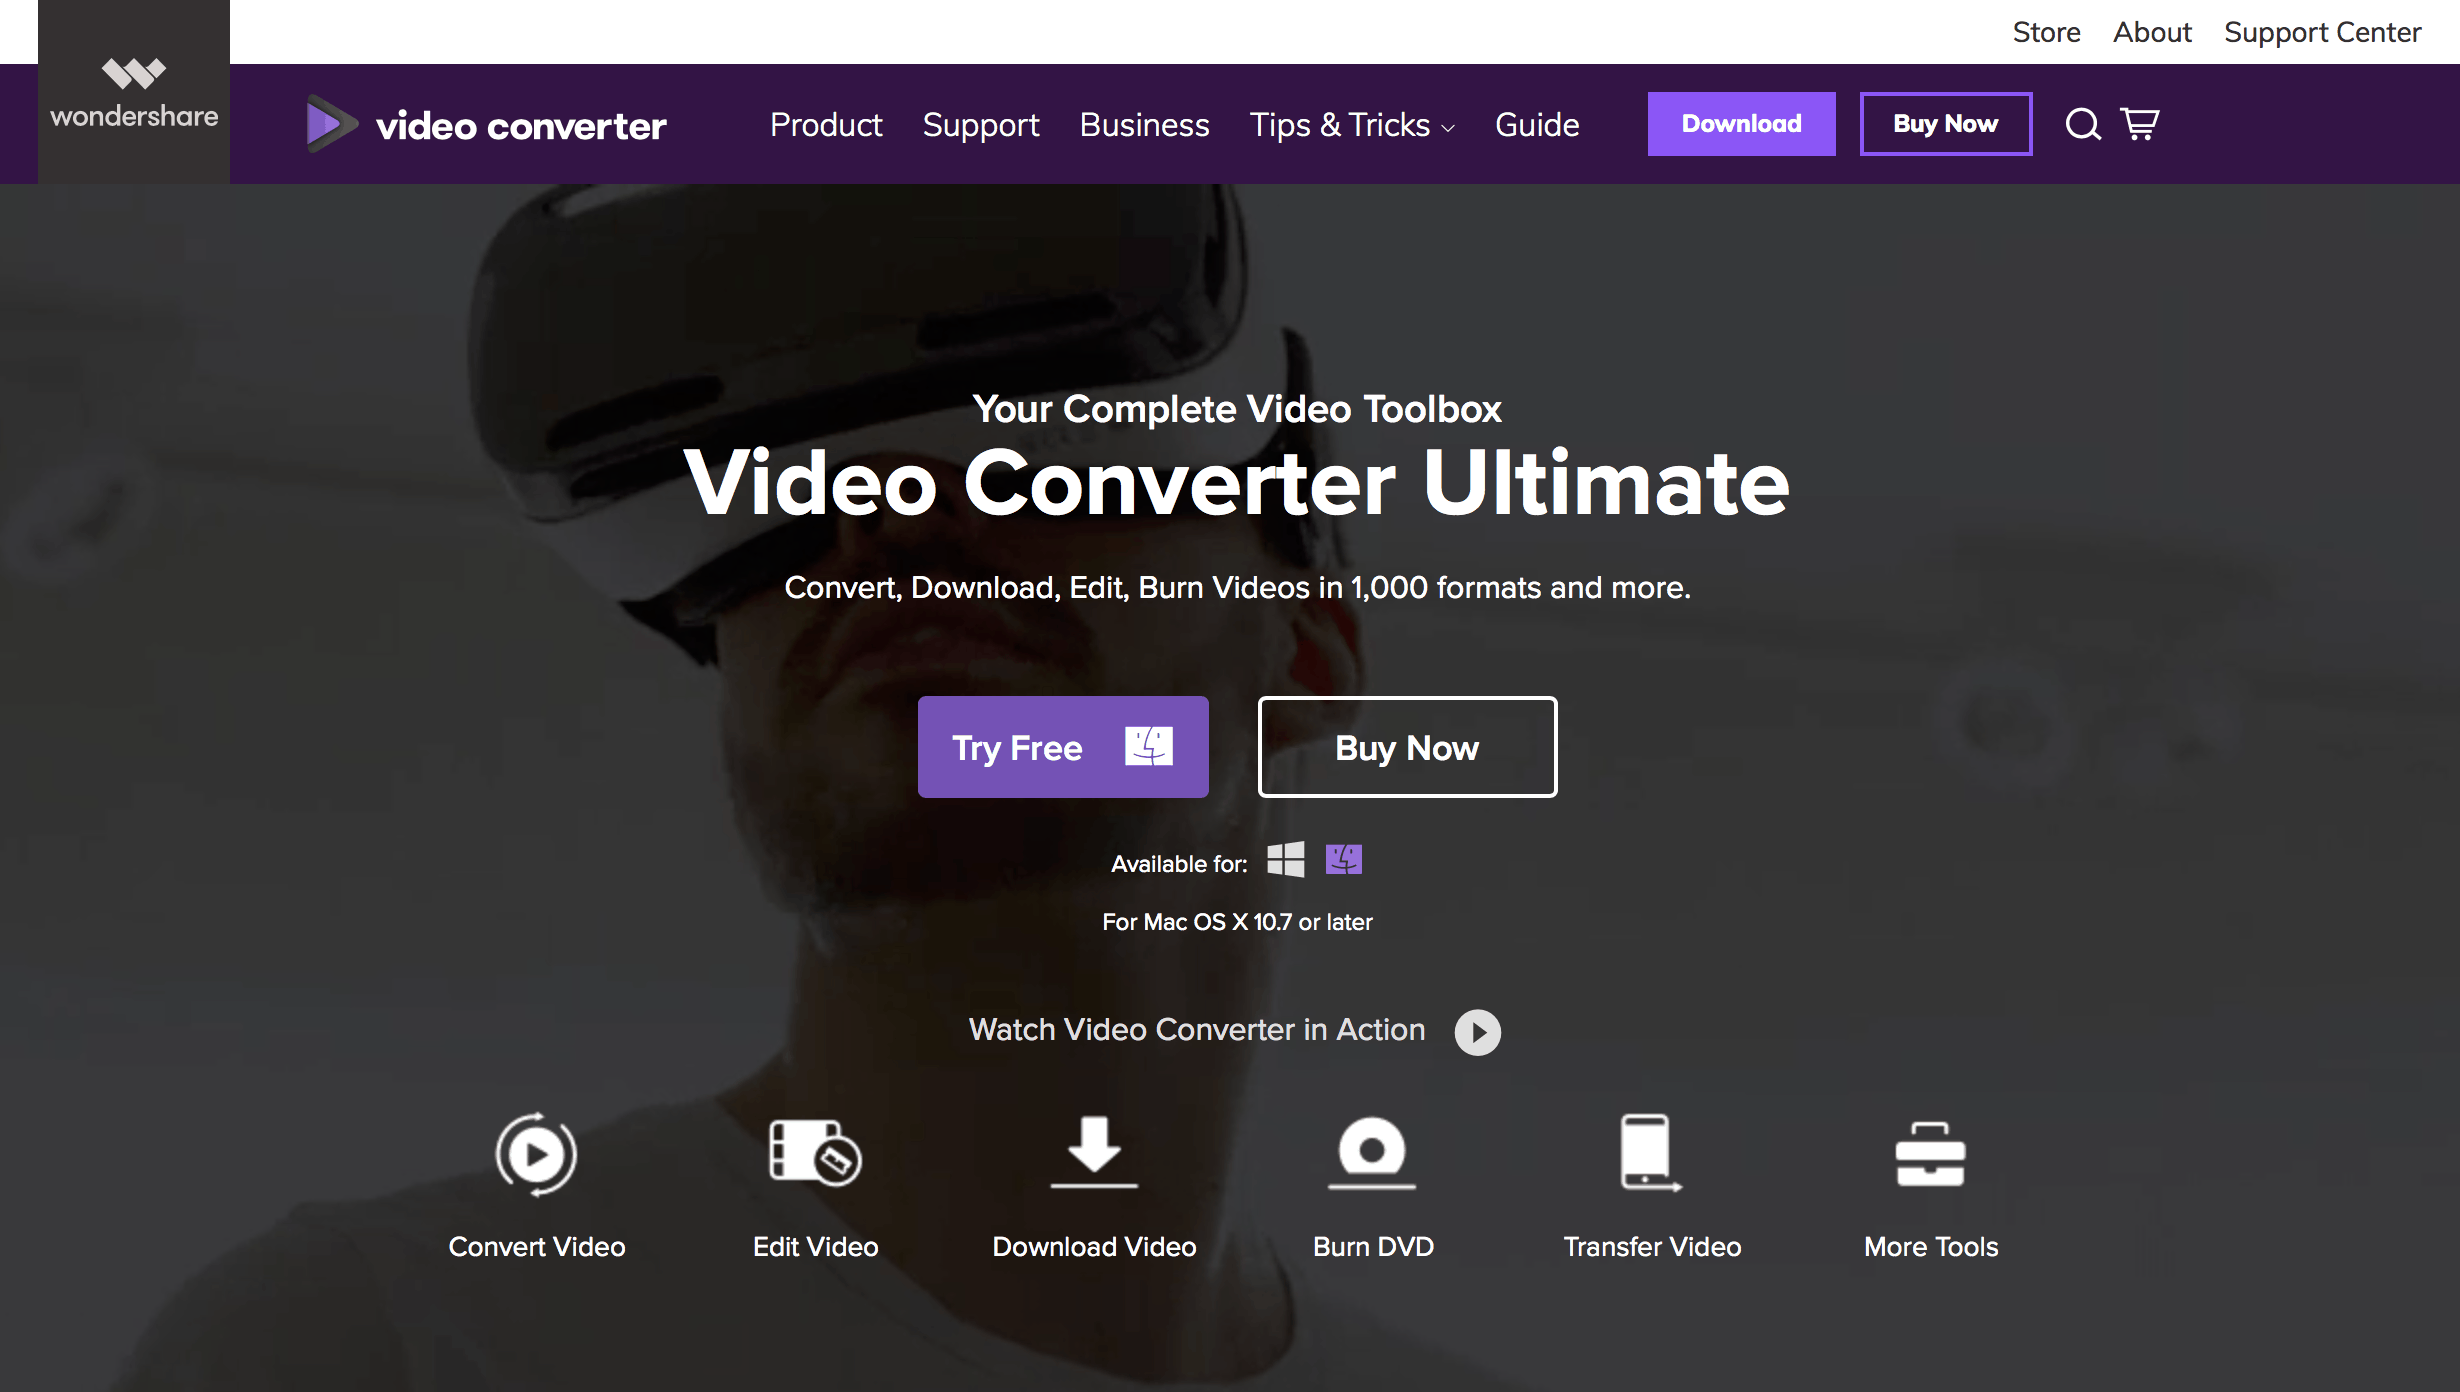 Wondershare Video Converter Ultimate Review 1